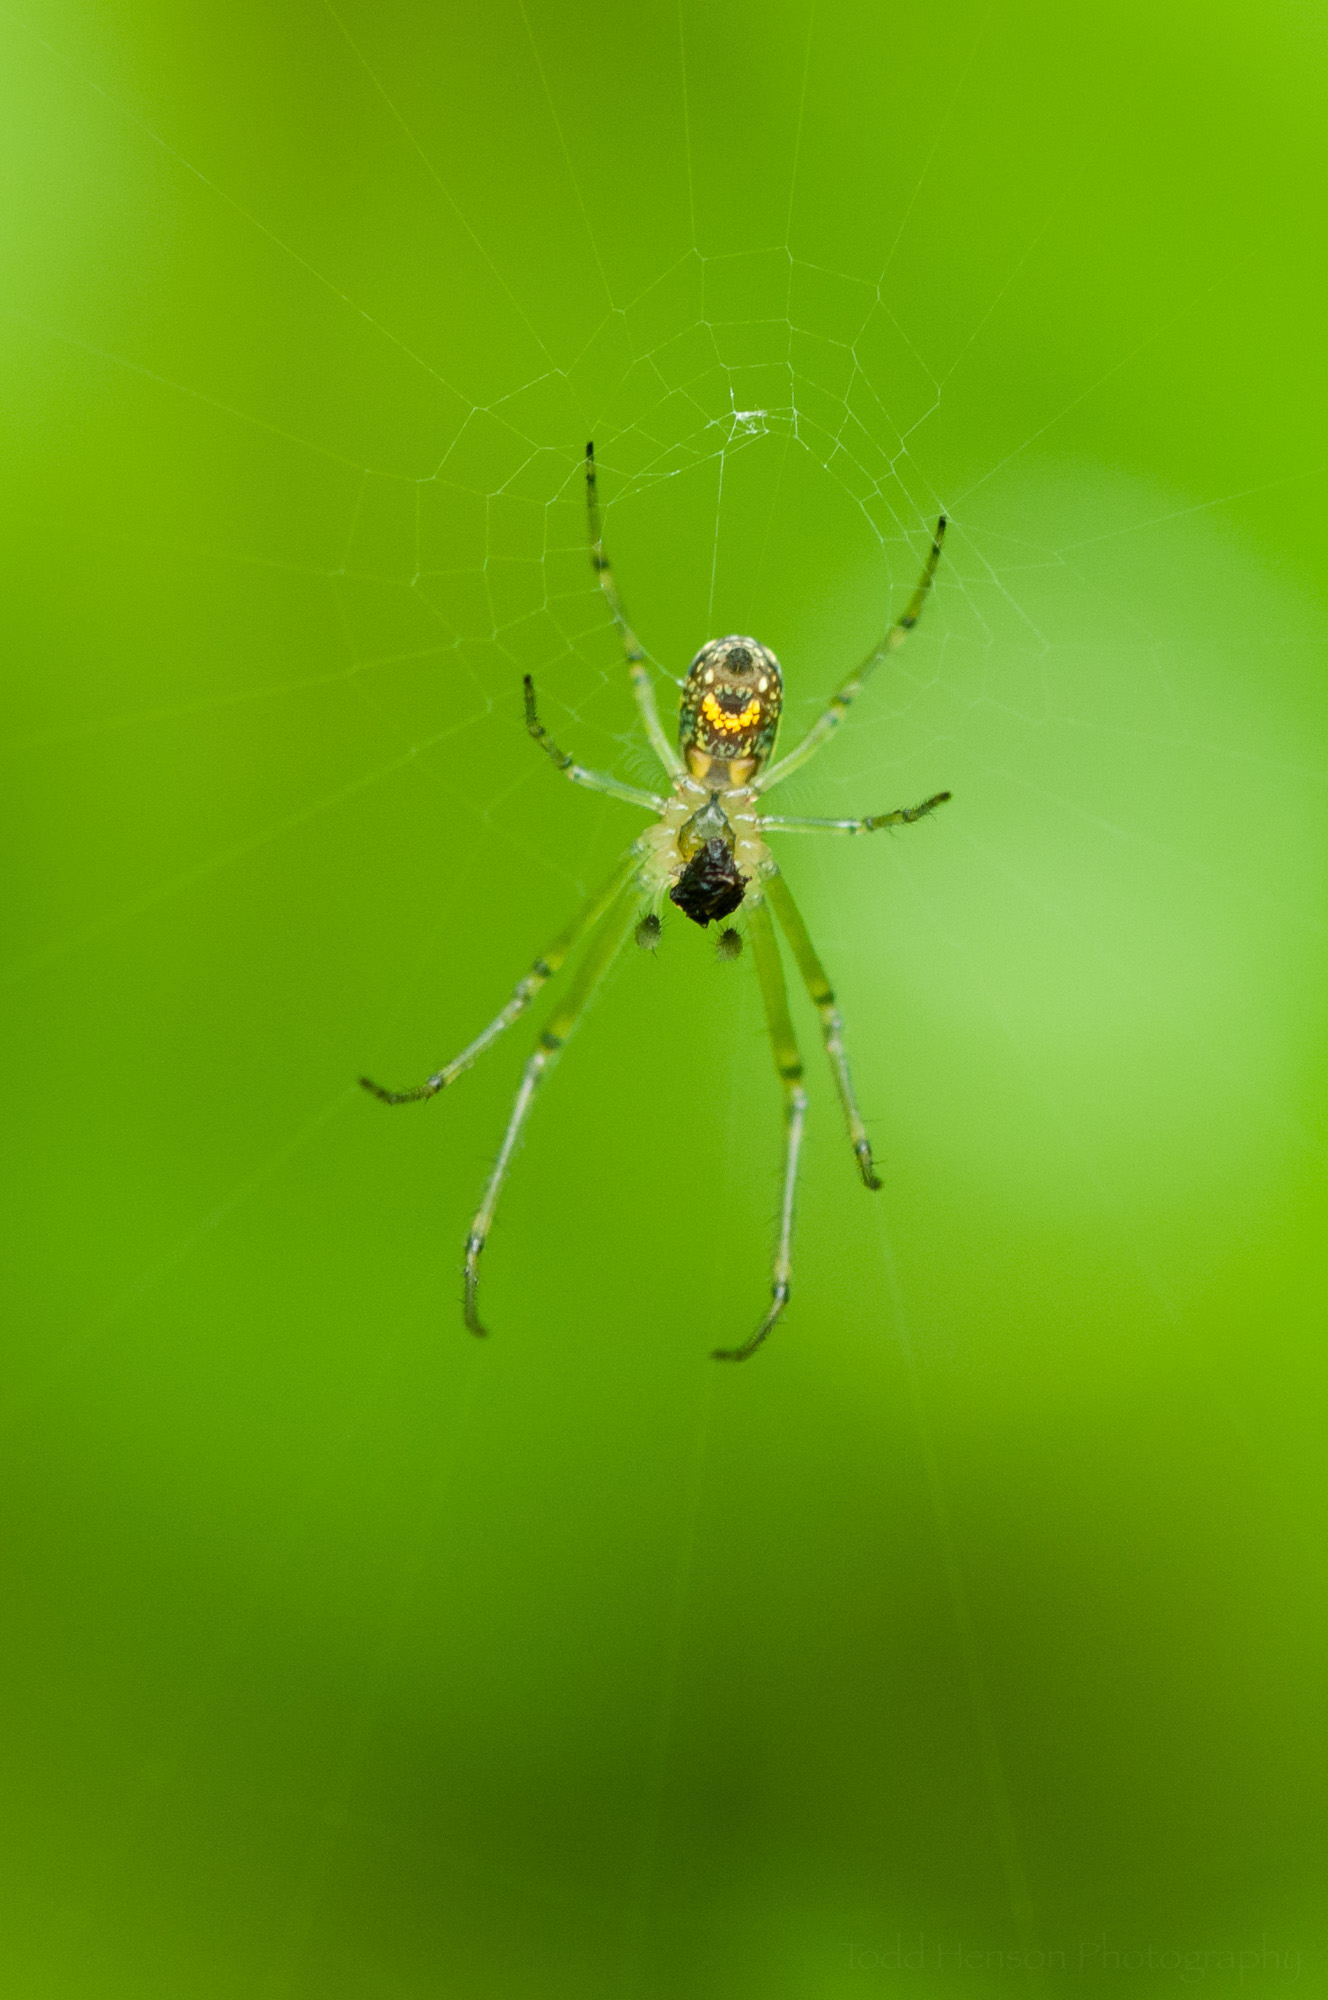 Underside of an Orchard Spider showing bright yellow patch.